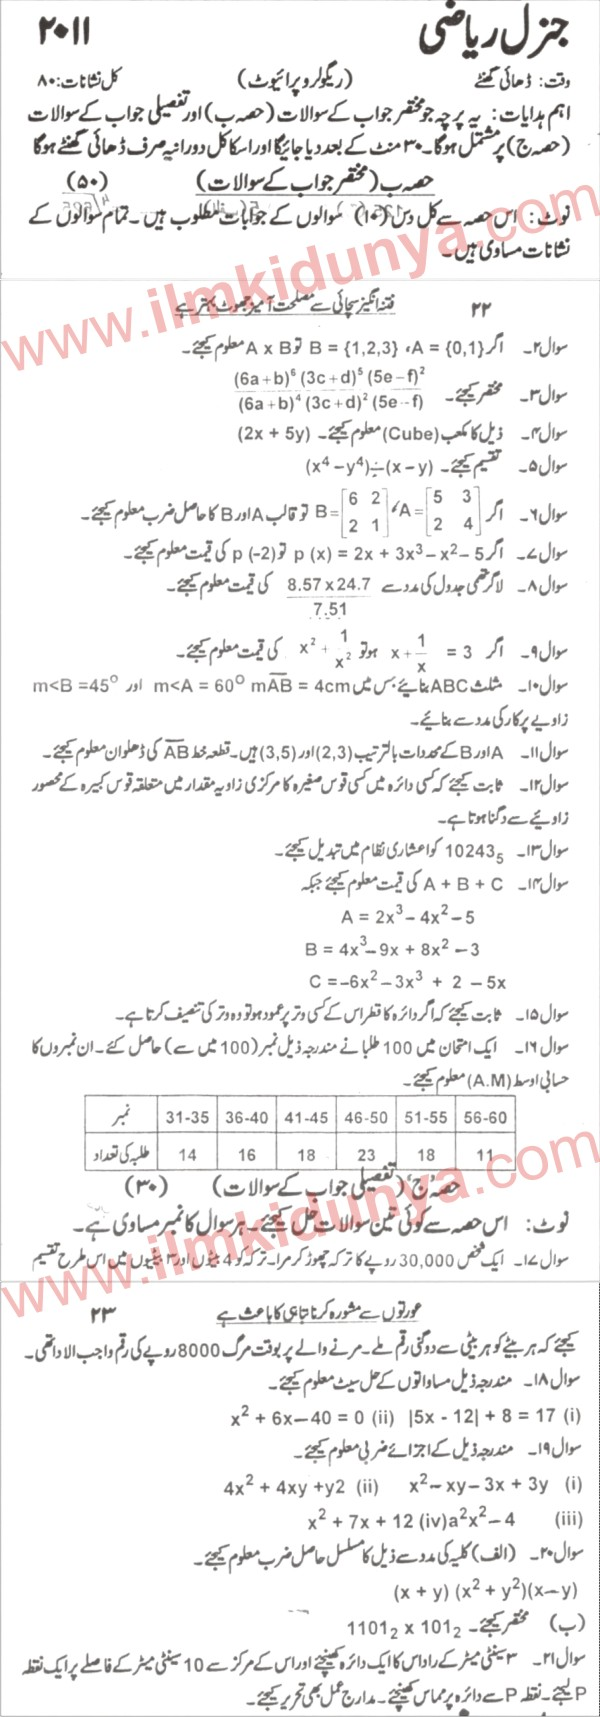 Karachi Board General Mathematics 9th Class Past Paper